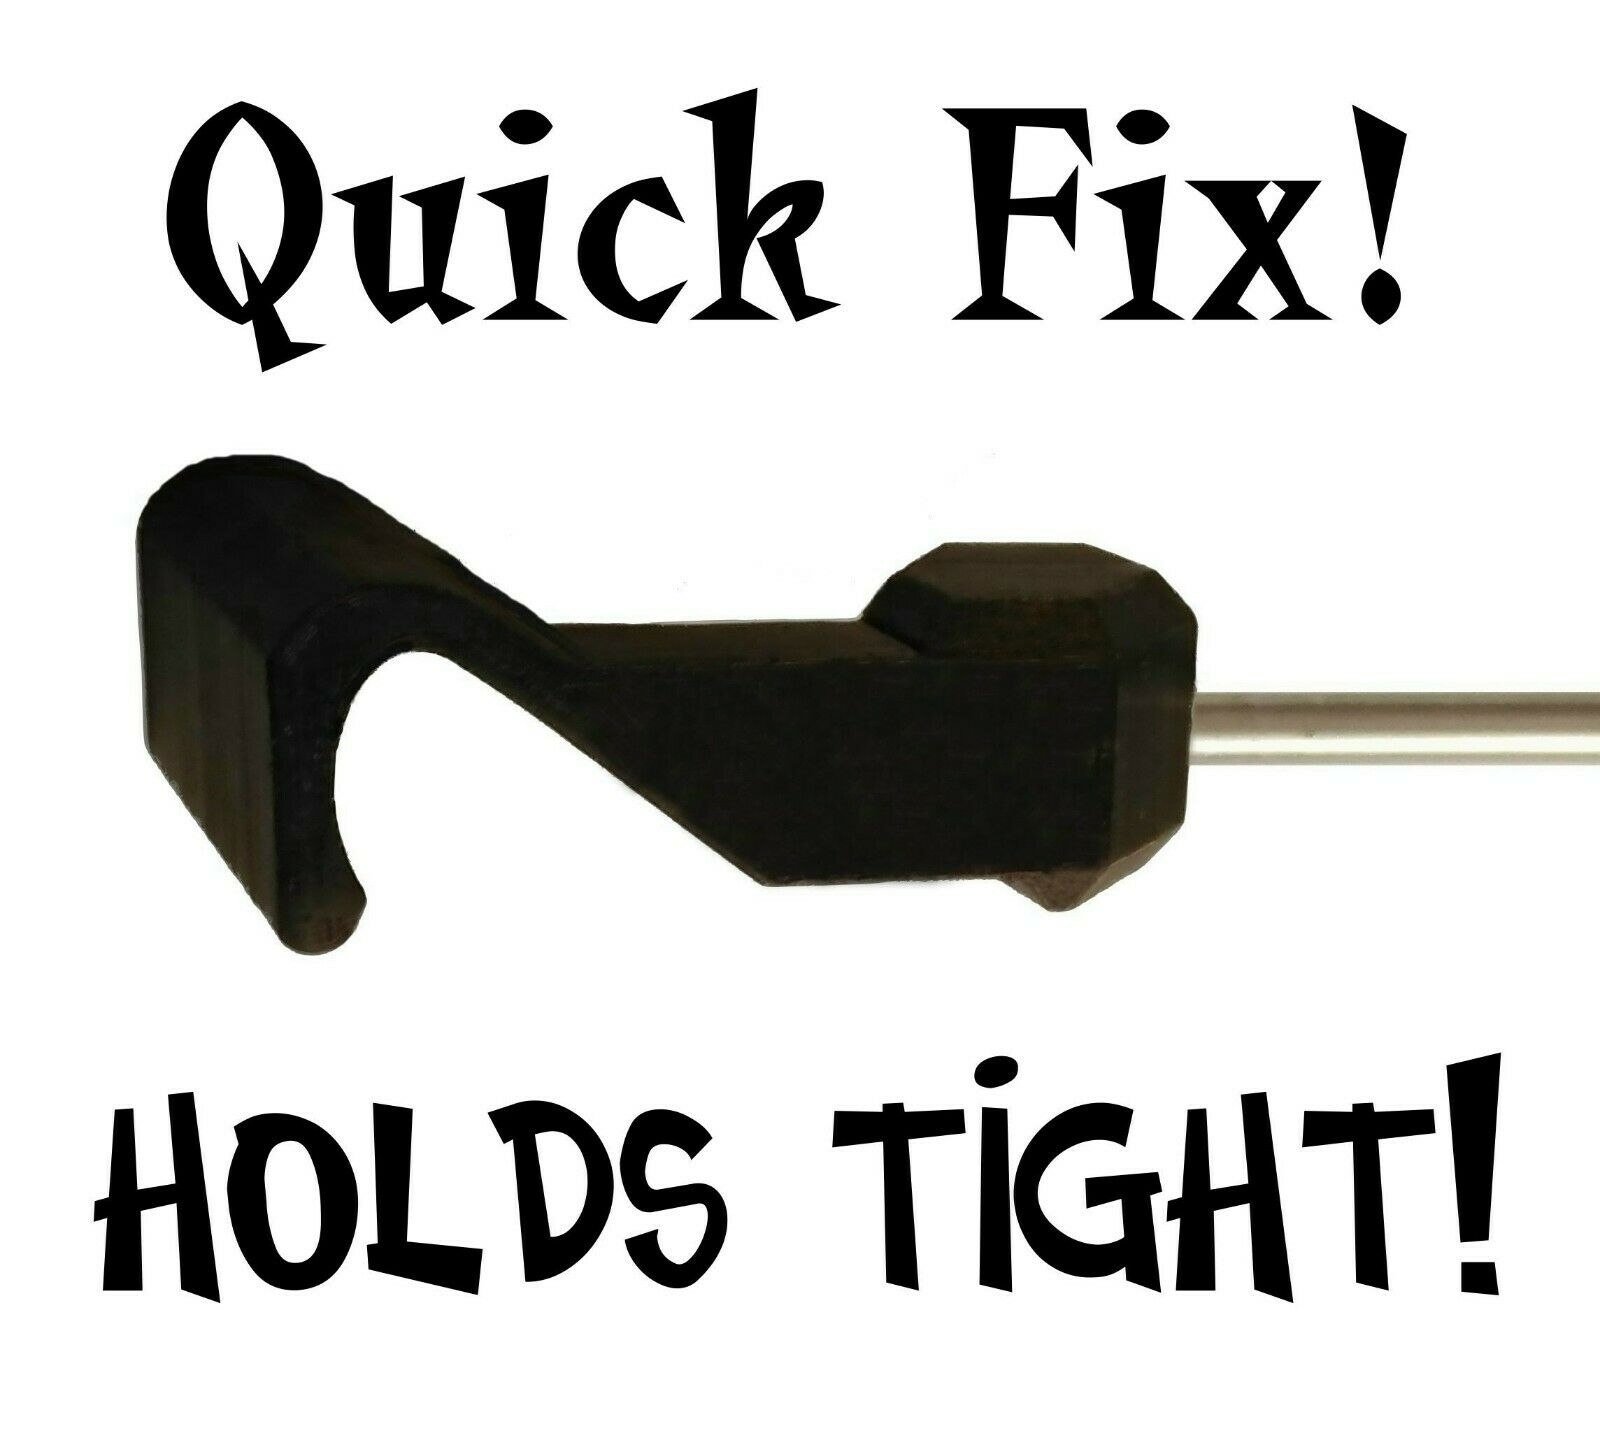 MERCURY MOUNTAINEER PARKING BRAKE RELEASE HANDLE REPLACEMENT (MONEY BACK GUARANT Not Applicable